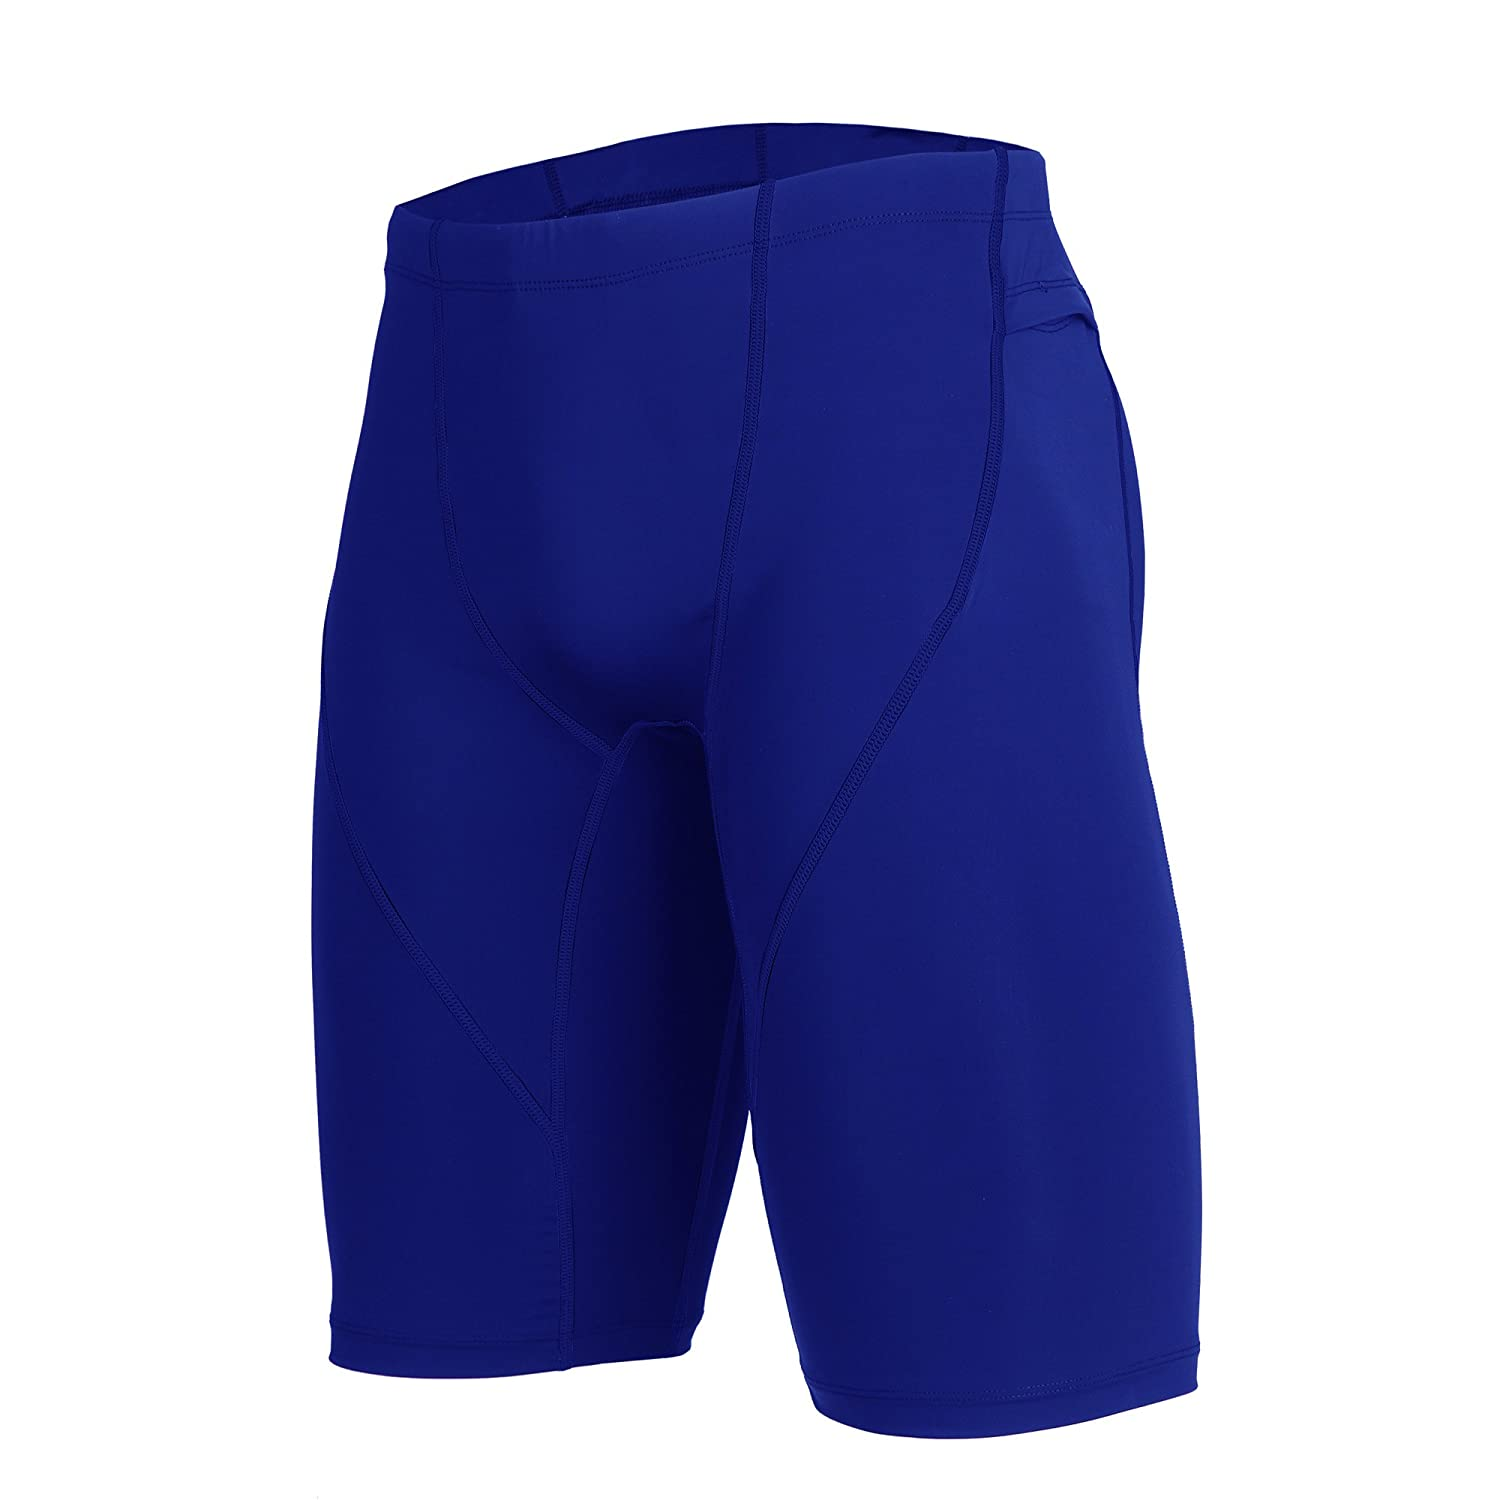 6b609909098 The compression shorts material 80% Polyester   20% spandex 3cm waistband  of base layer do not roll